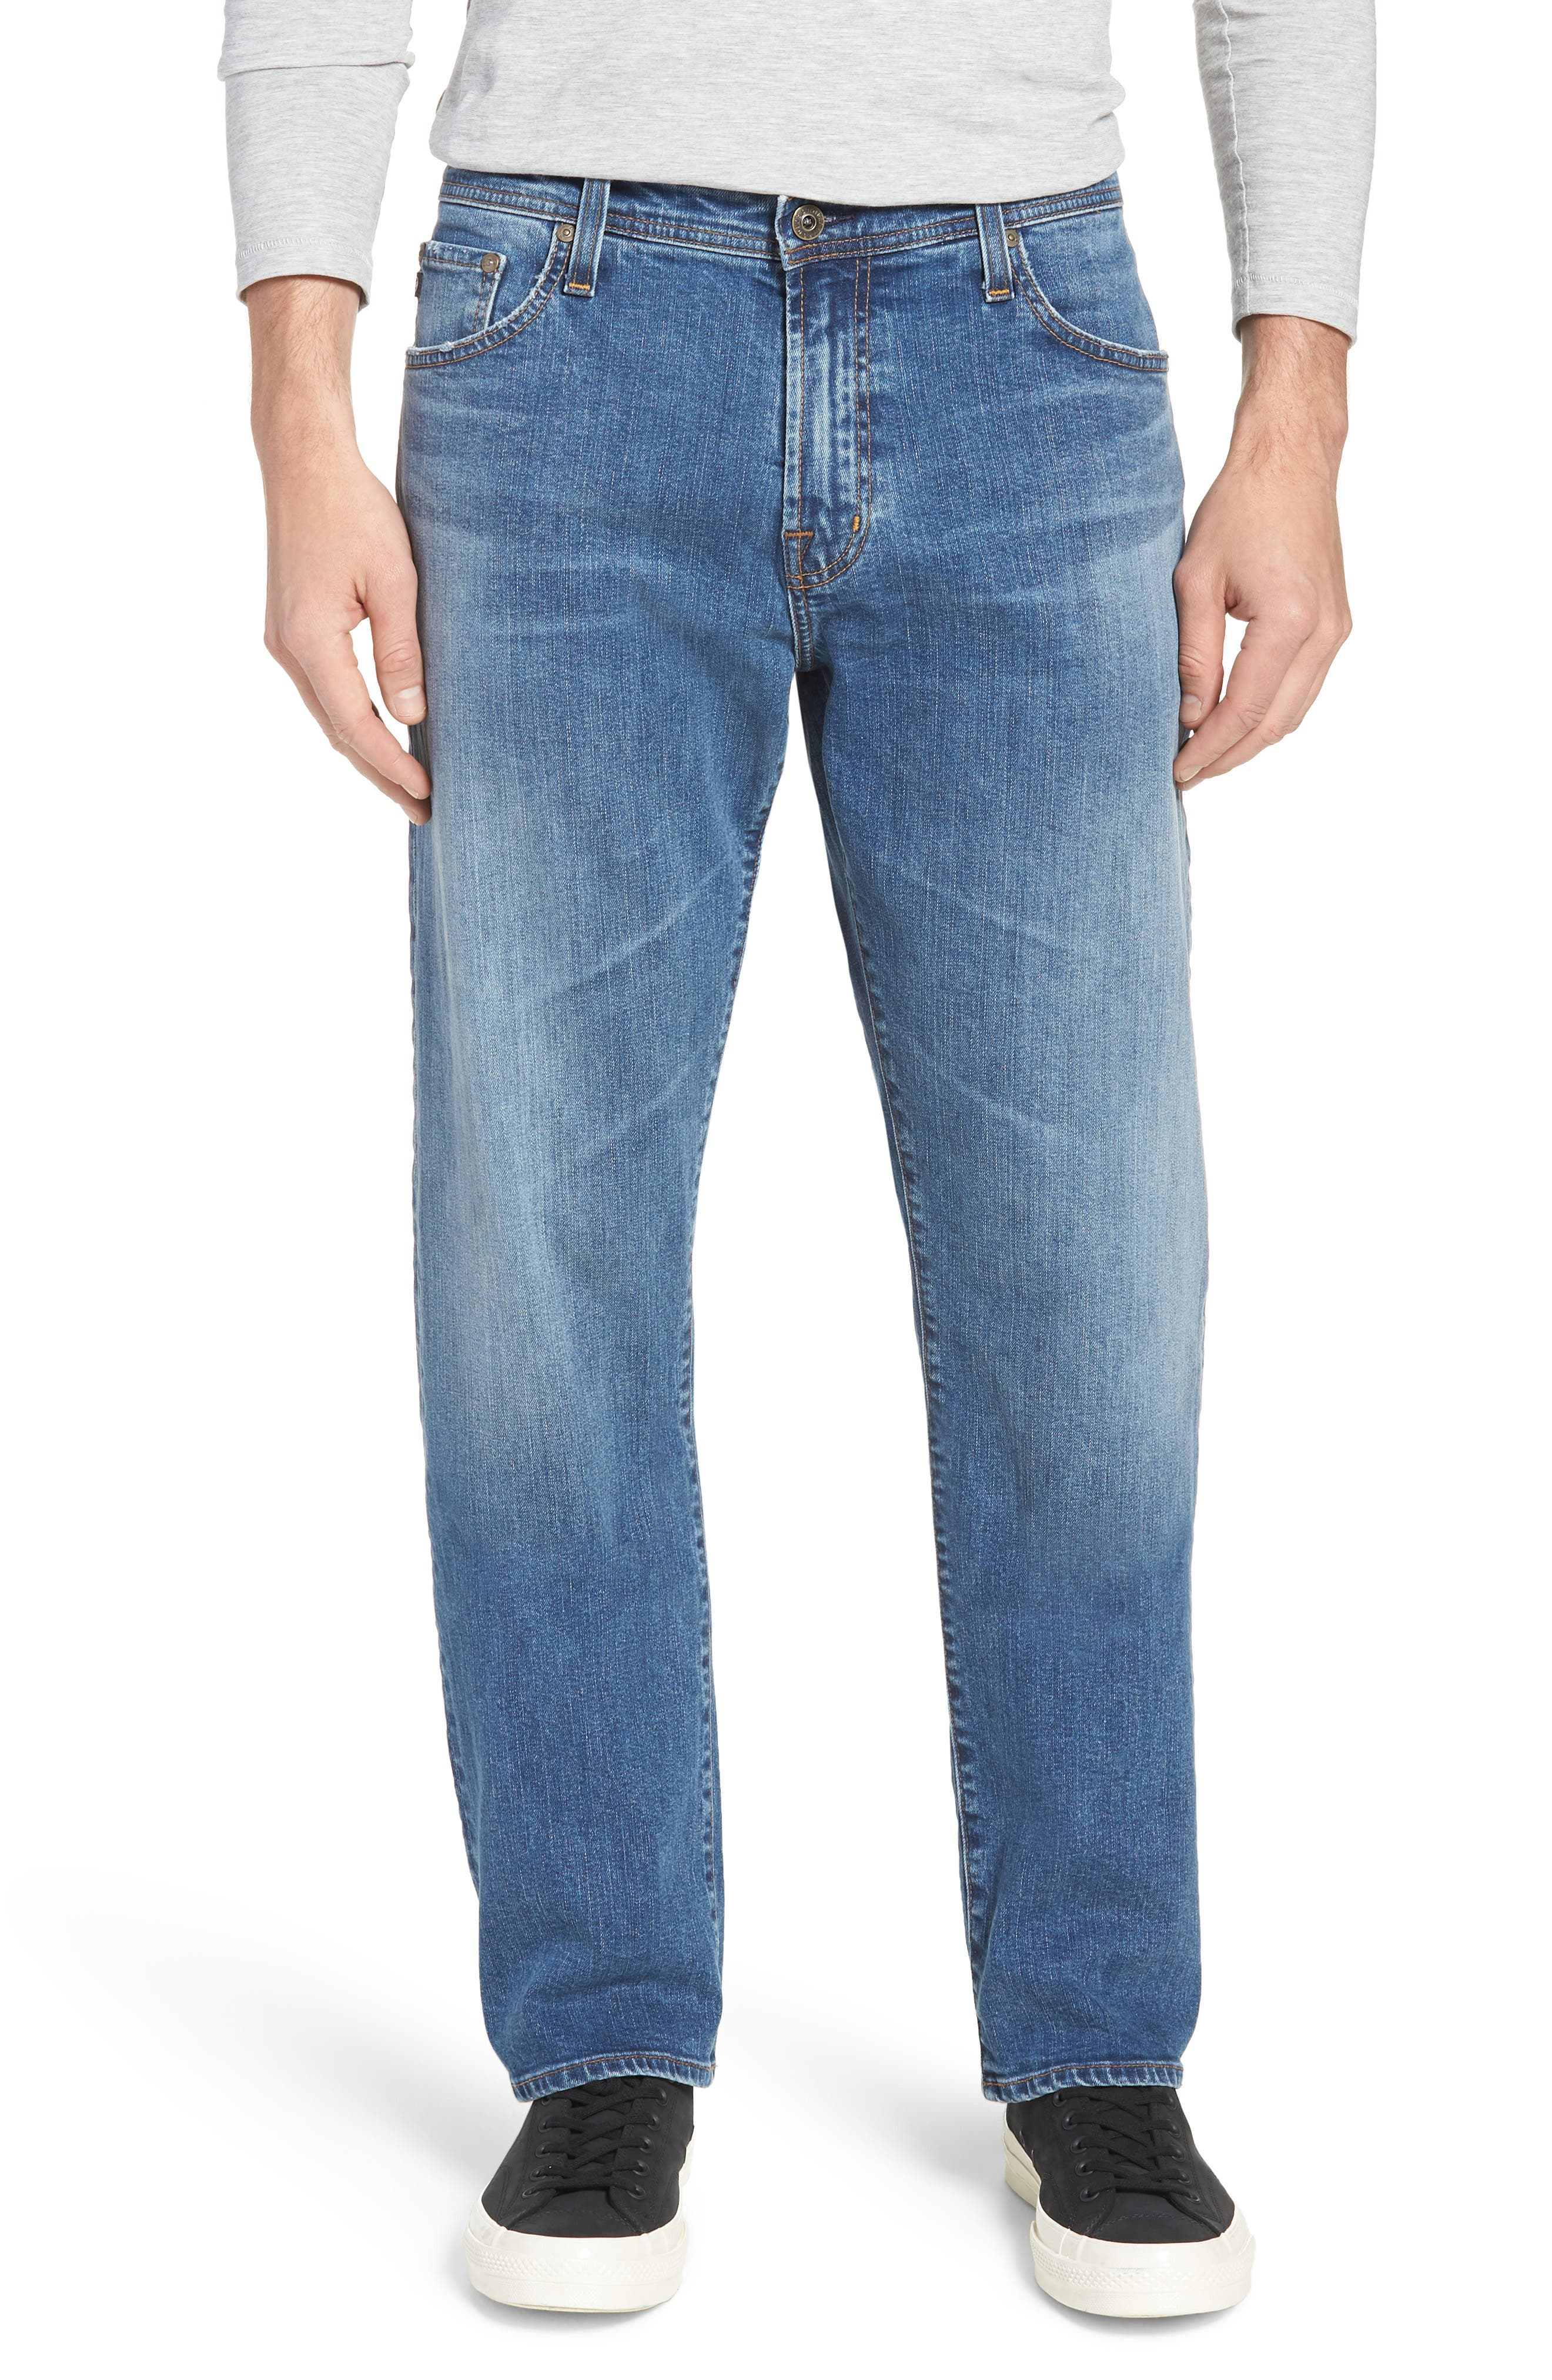 Ives Straight Leg Jeans,                             Main thumbnail 1, color,                             485